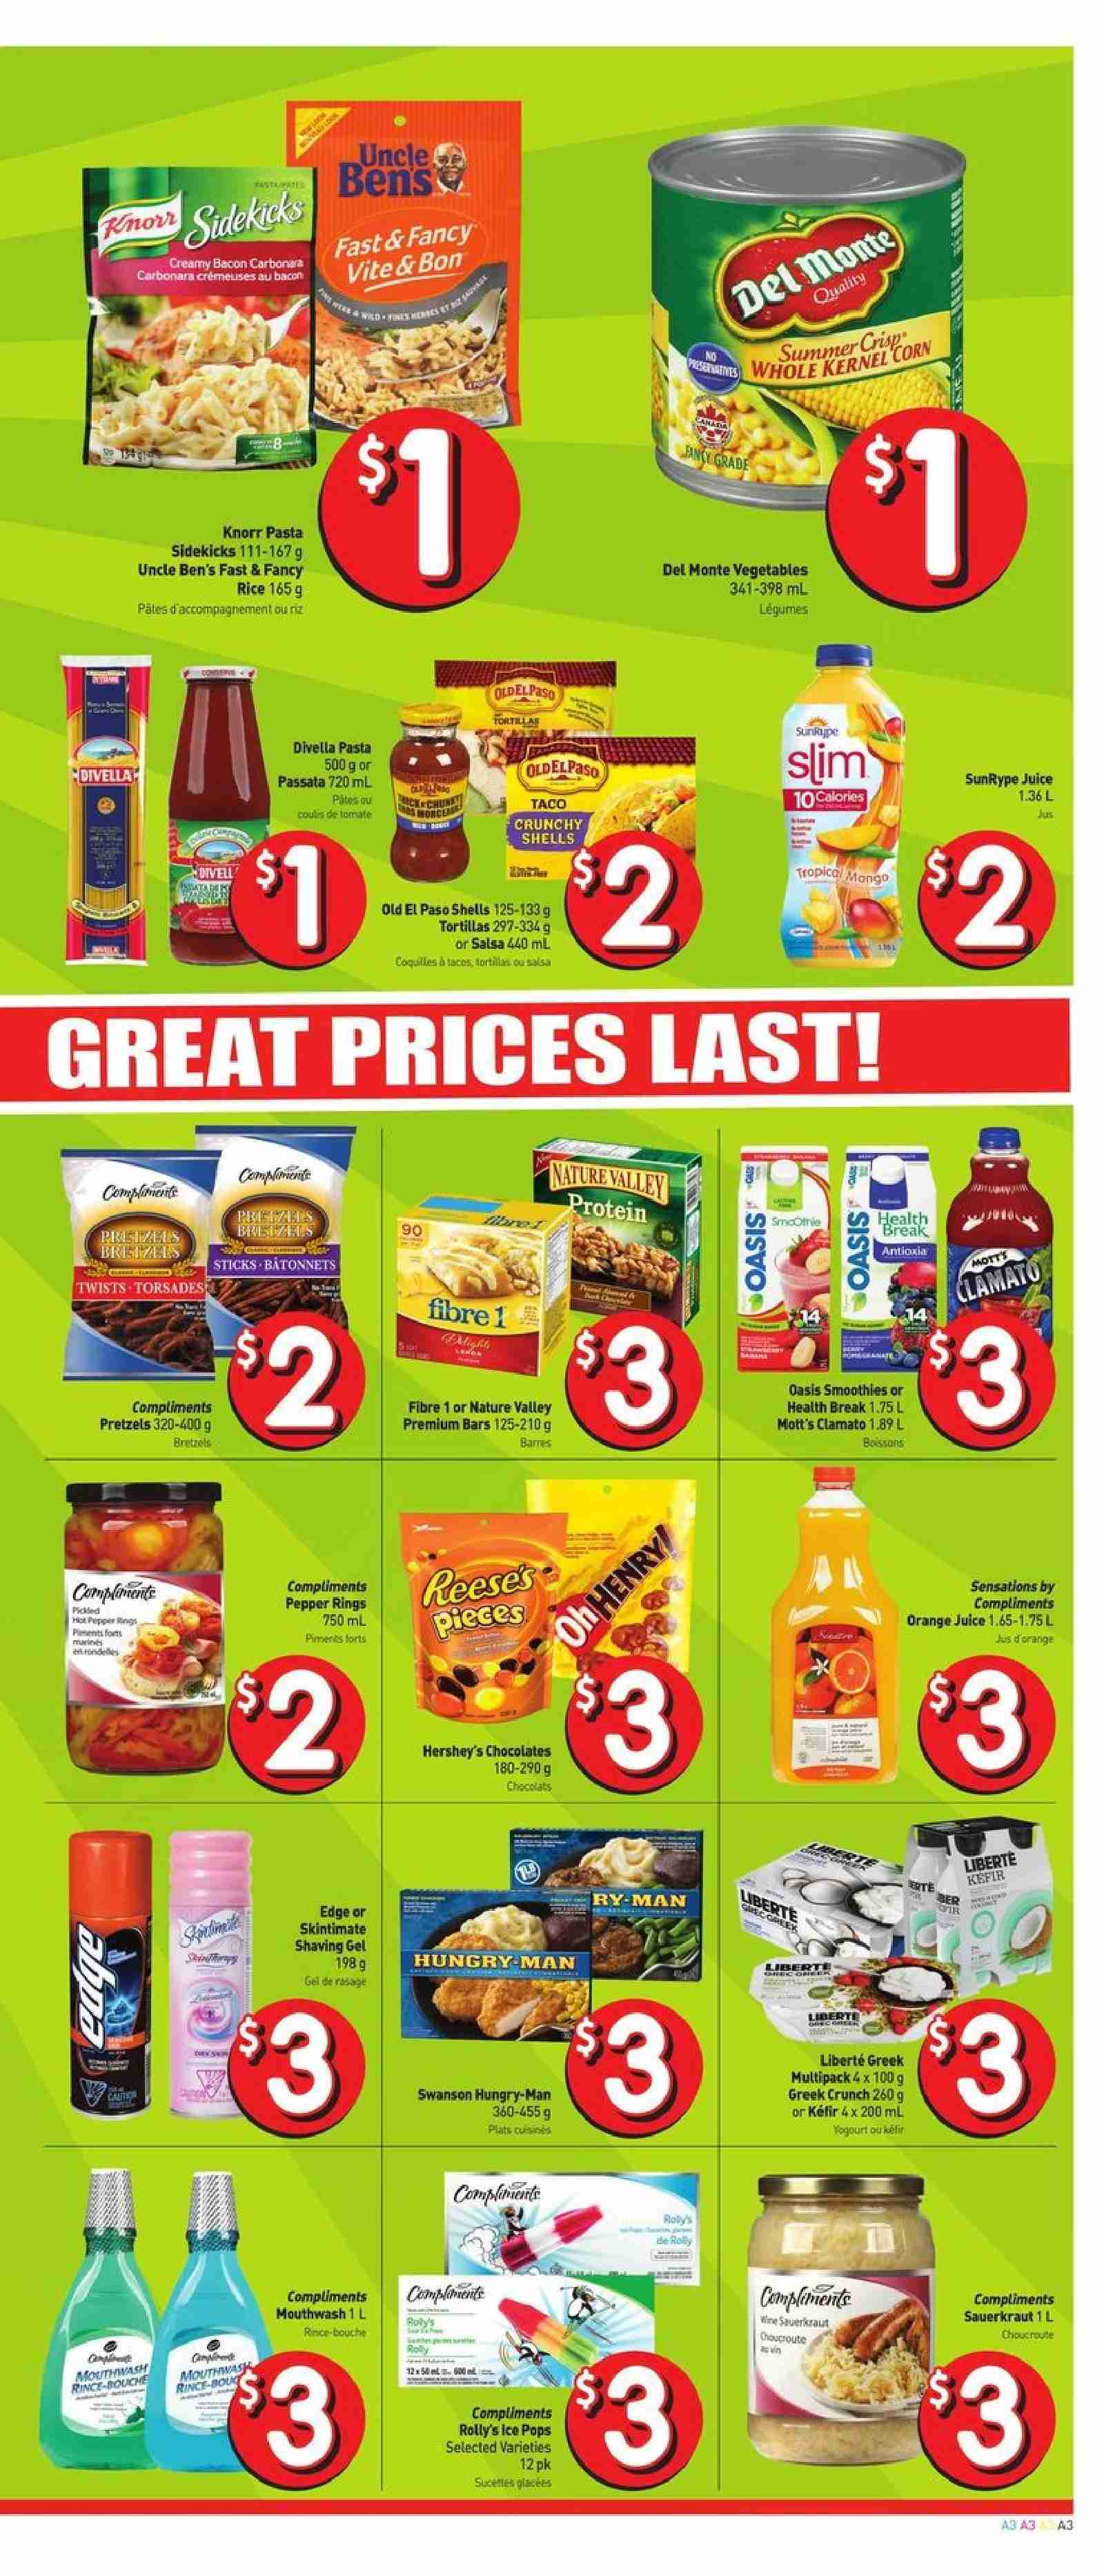 FreshCo. Flyer  - July 26, 2018 - August 01, 2018. Page 3.